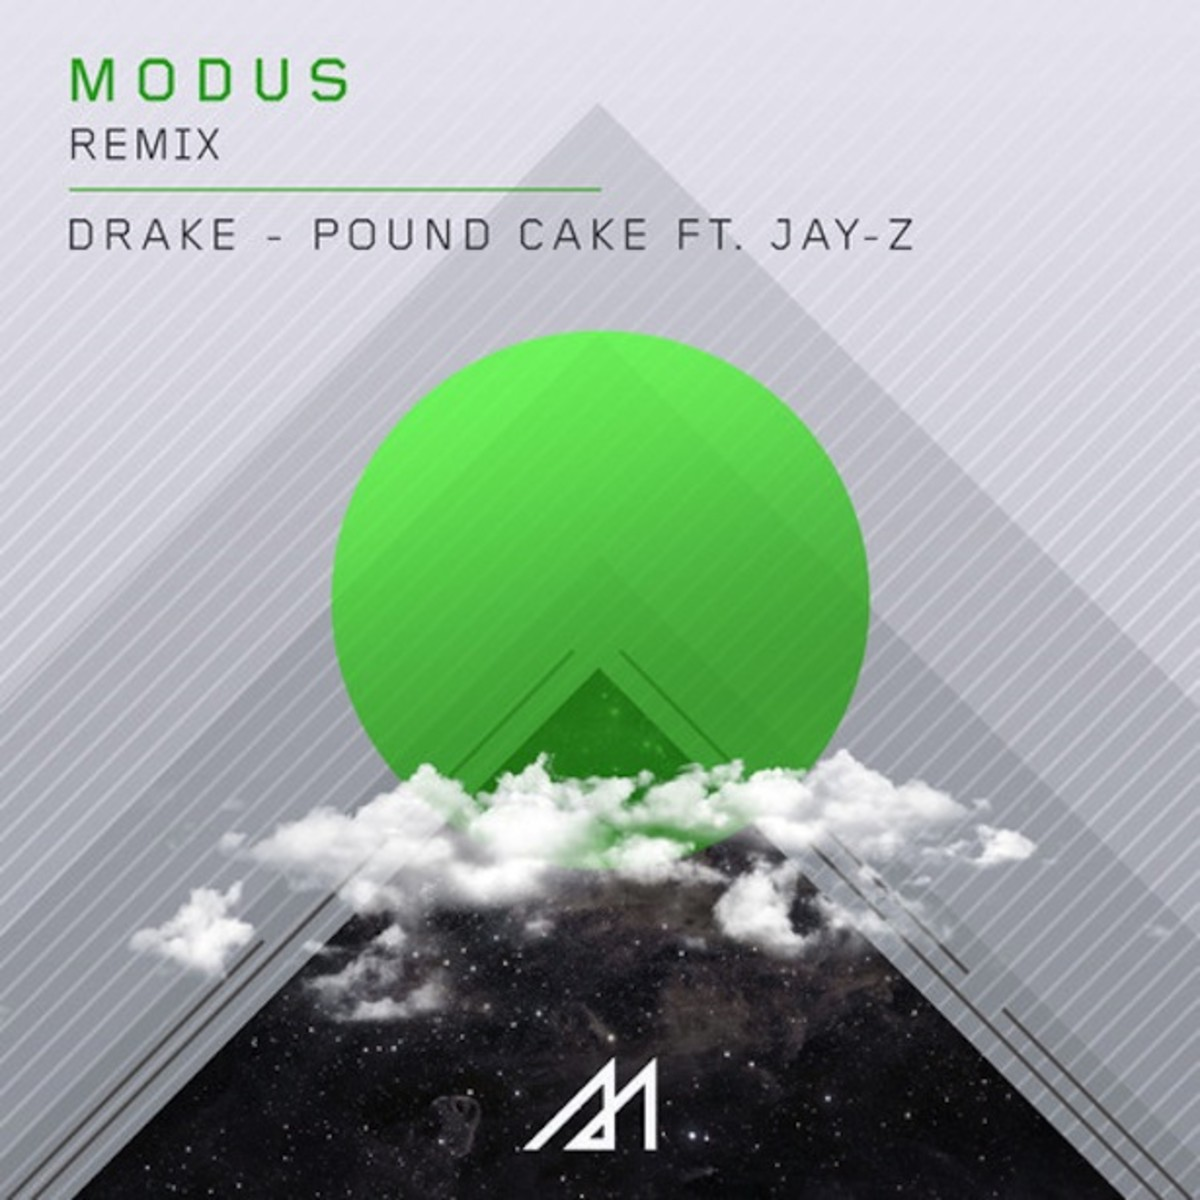 EDM Download: Modus' Drake Remix Will Make You See Tiny Heart Bubbles